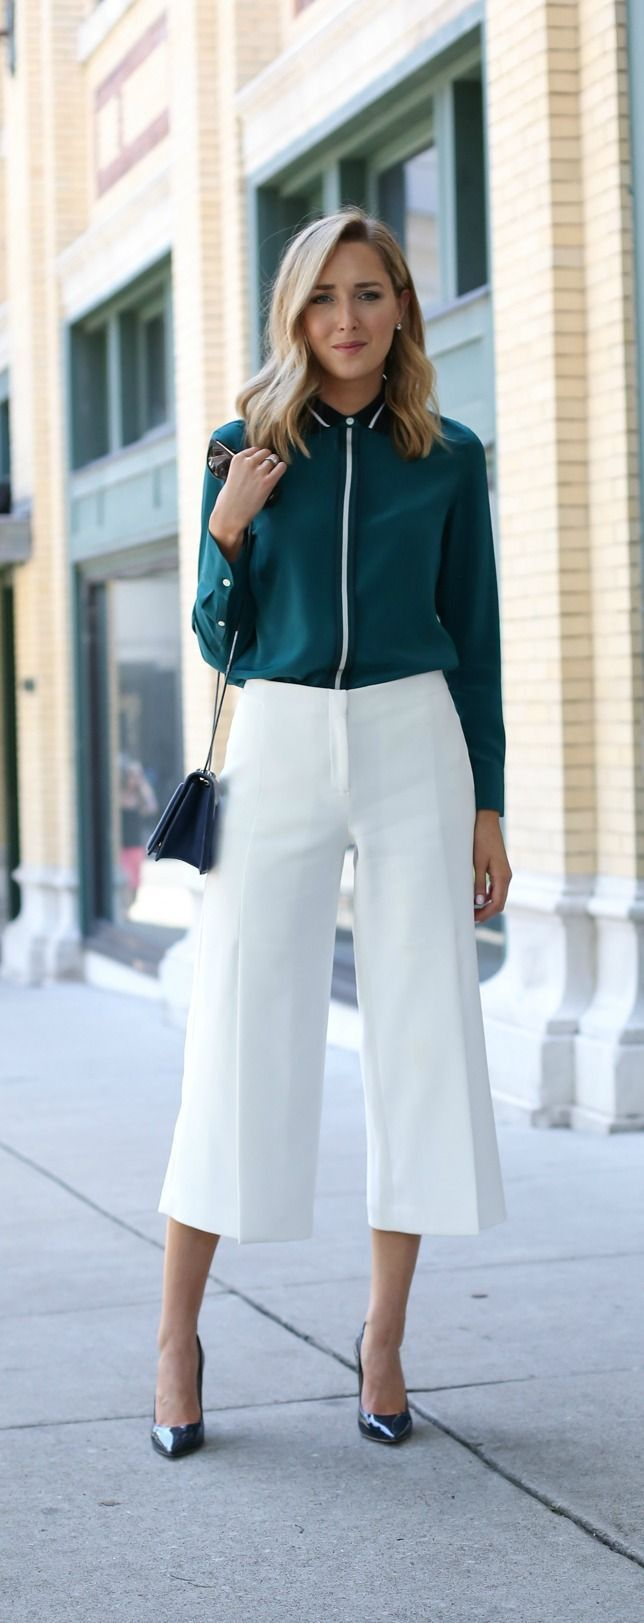 emerald long sleeve blouse, ivory culottes, navy patent pointed toe pumps, navy crossbody bag {rag & bone, jimmy choo, phillip lim}